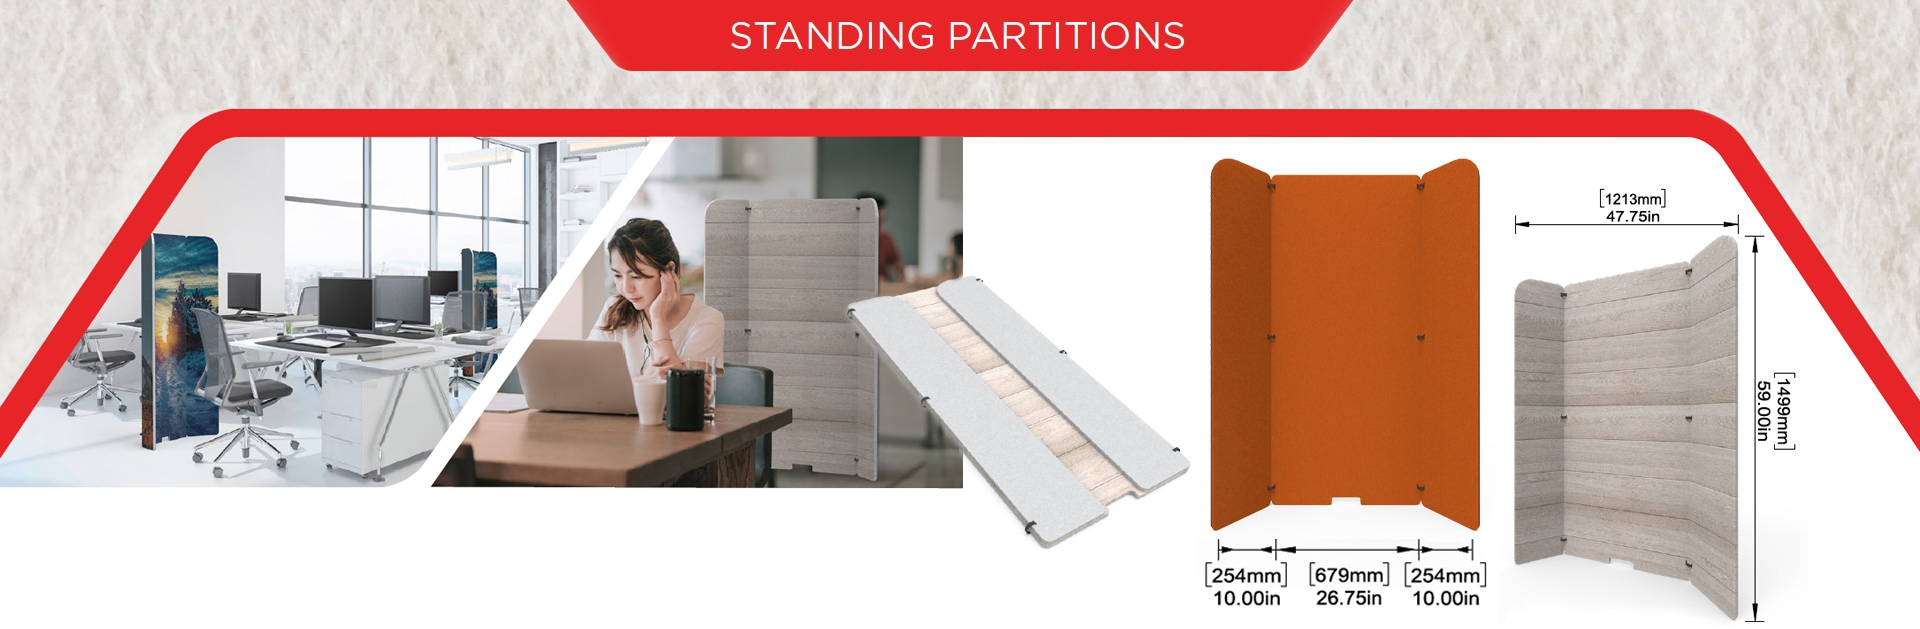 Standing partitions